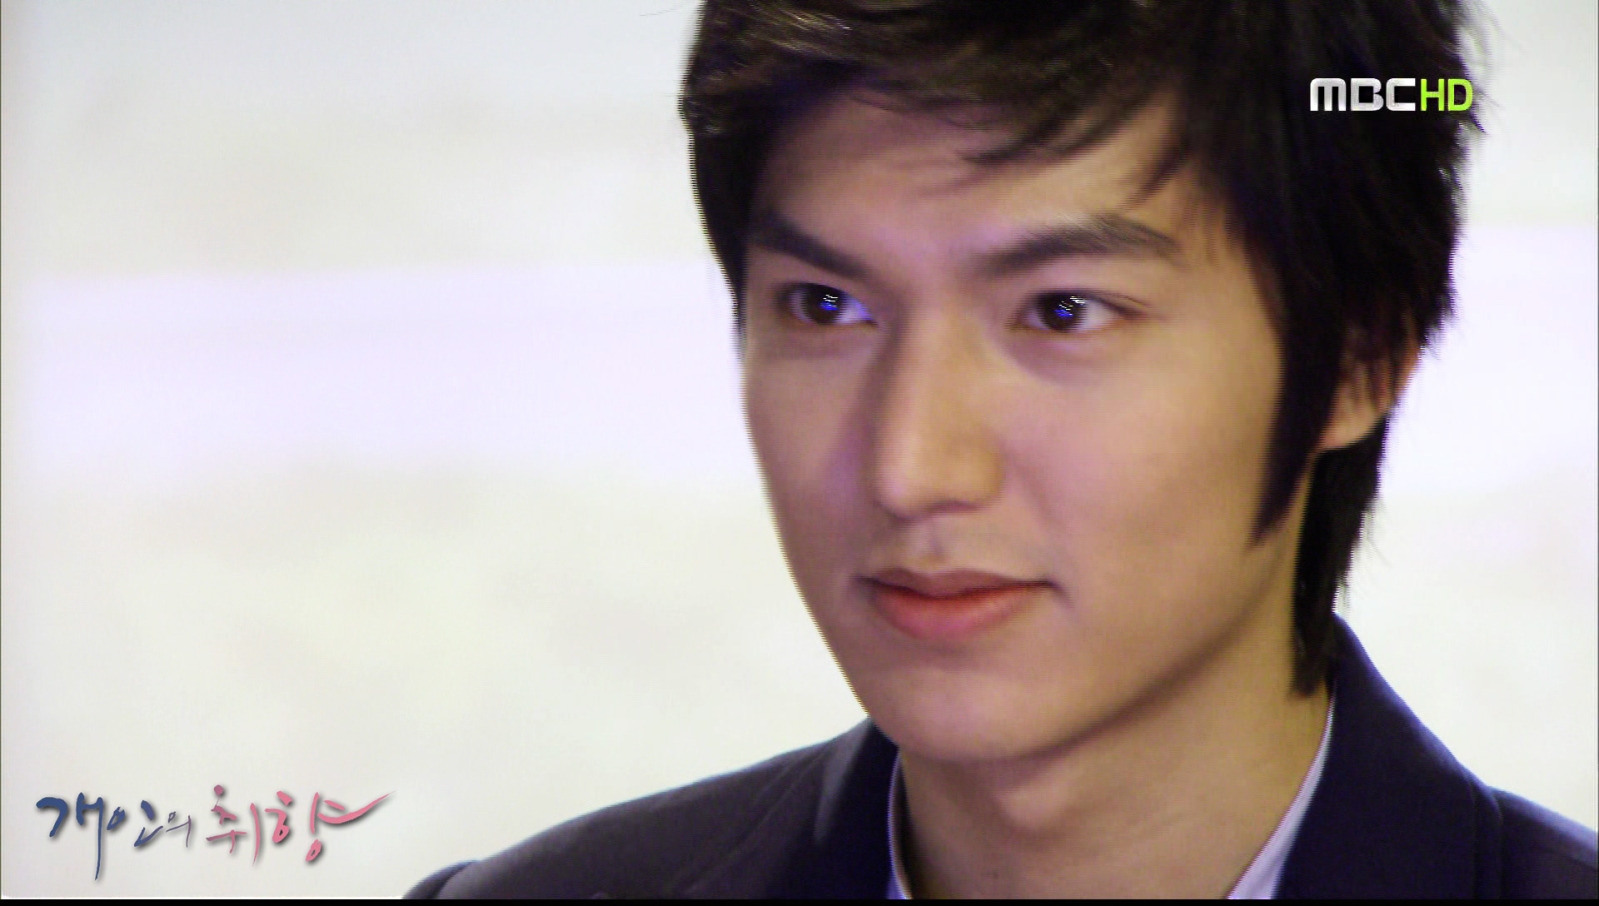 Wallpapers pictures photos foto lee min ho pictures